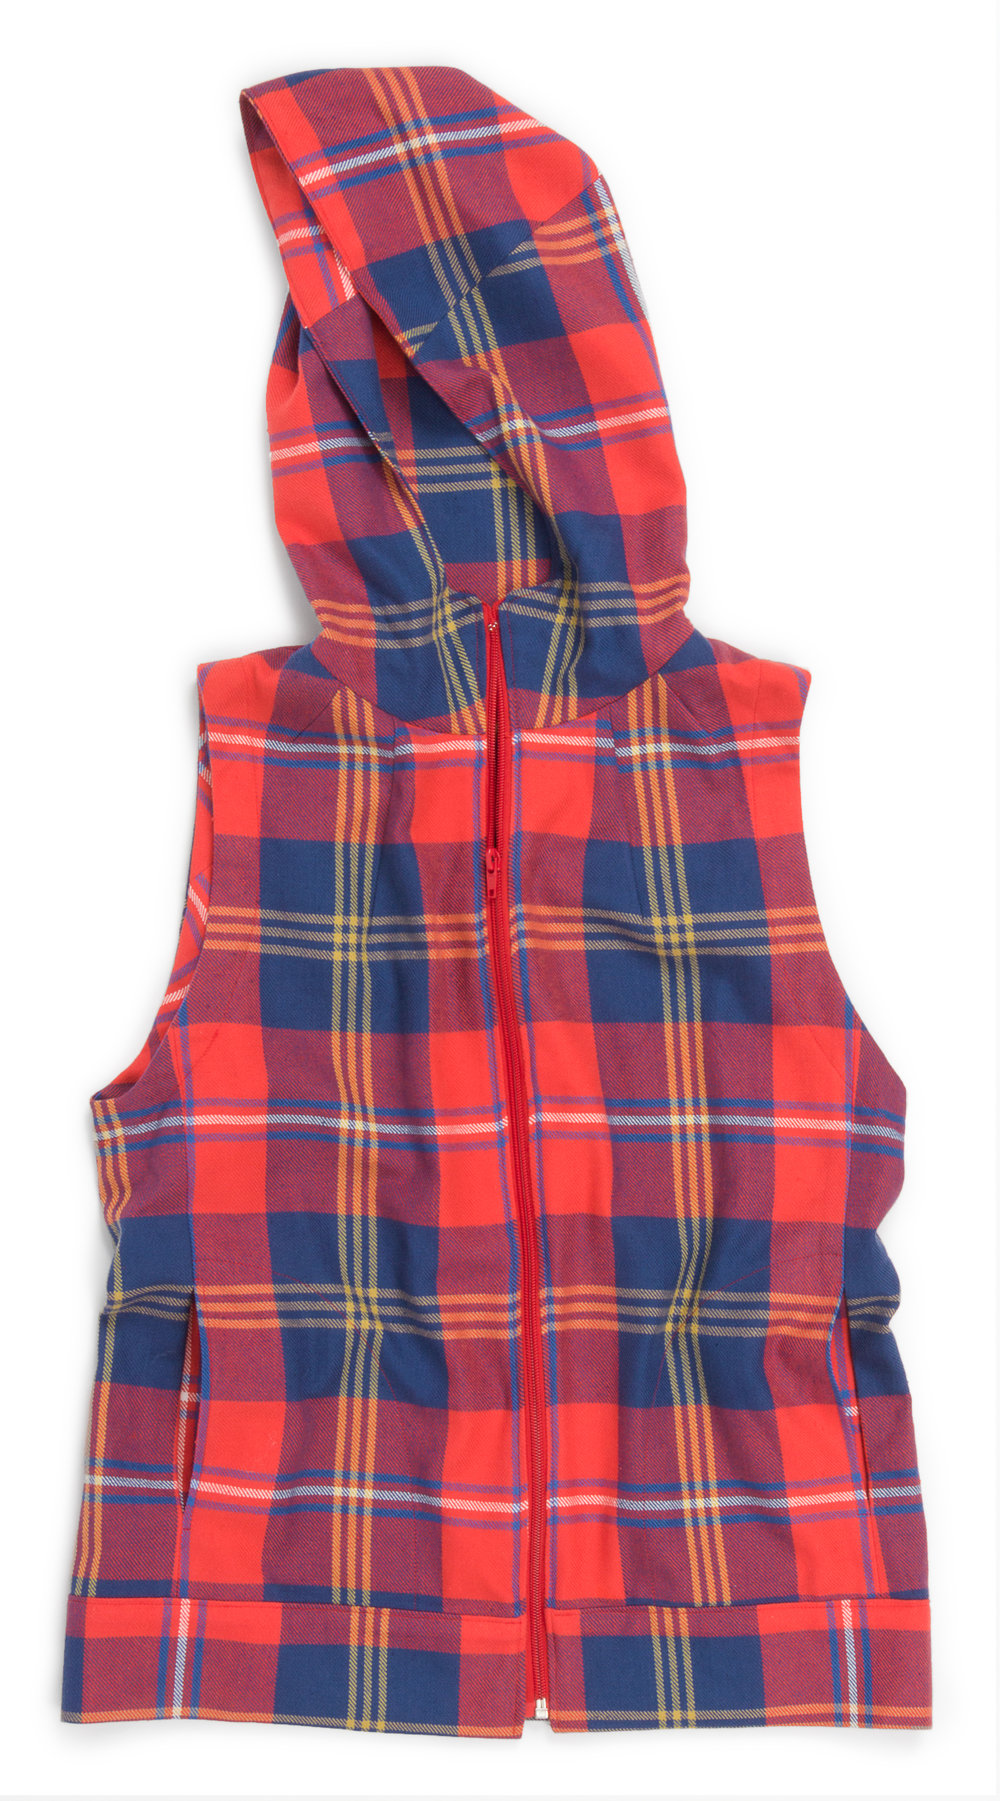 Dropje Hooded Vest designed by Waffle Patterns, made by Samantha Lindgren, features Grizzly Plaid (SRK-16417-3 RED)